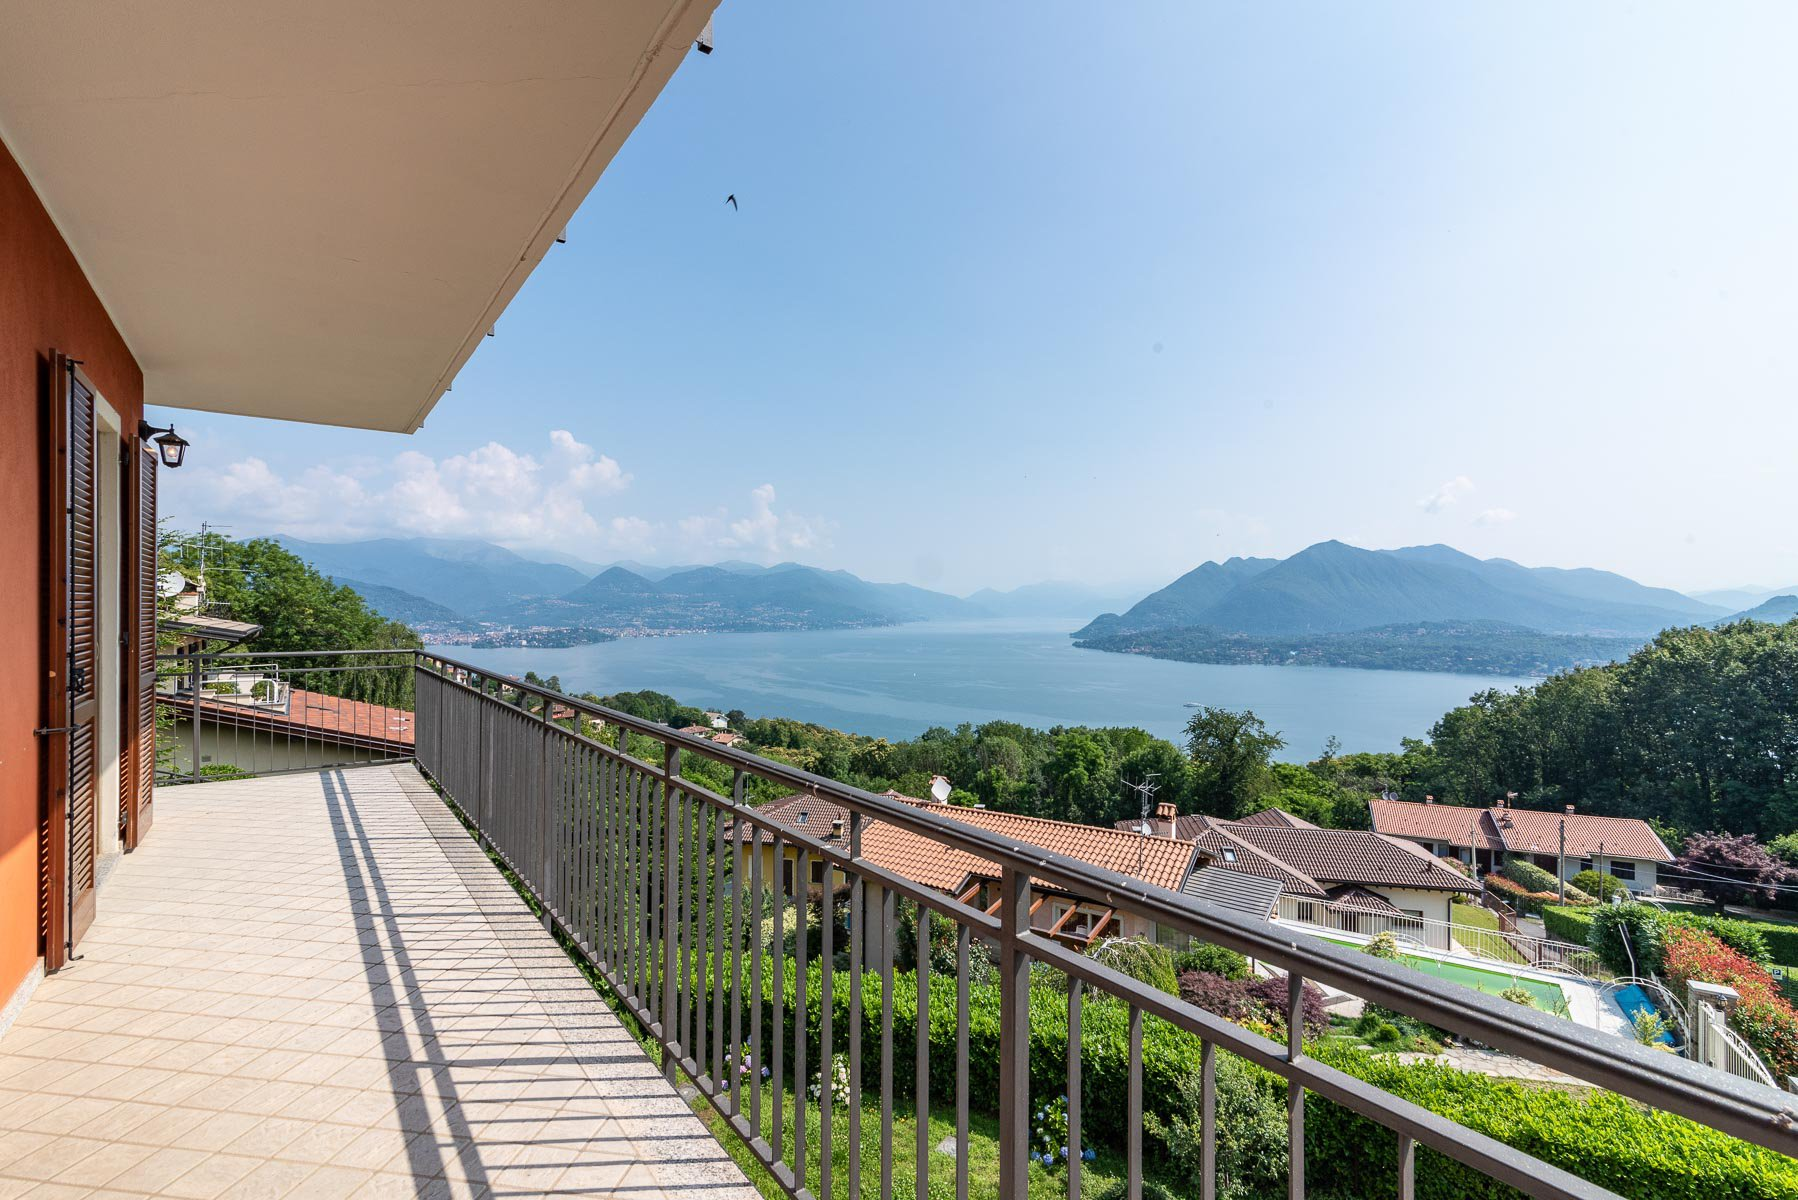 apartament for sale in stresa with a lake view-lake view